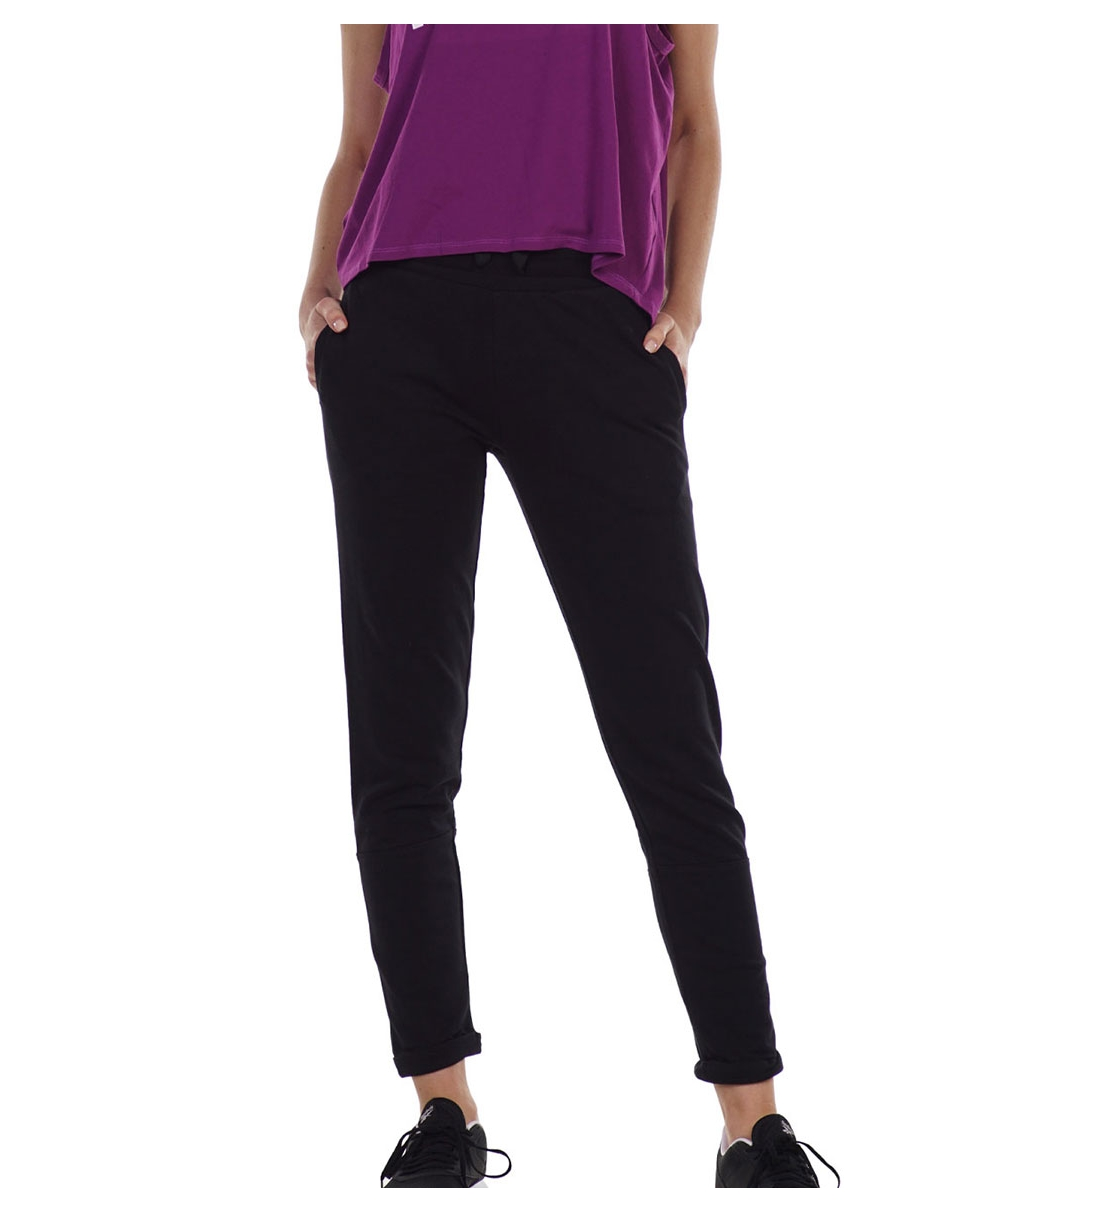 Body Action Ss21 Women'S Skinny Joggers